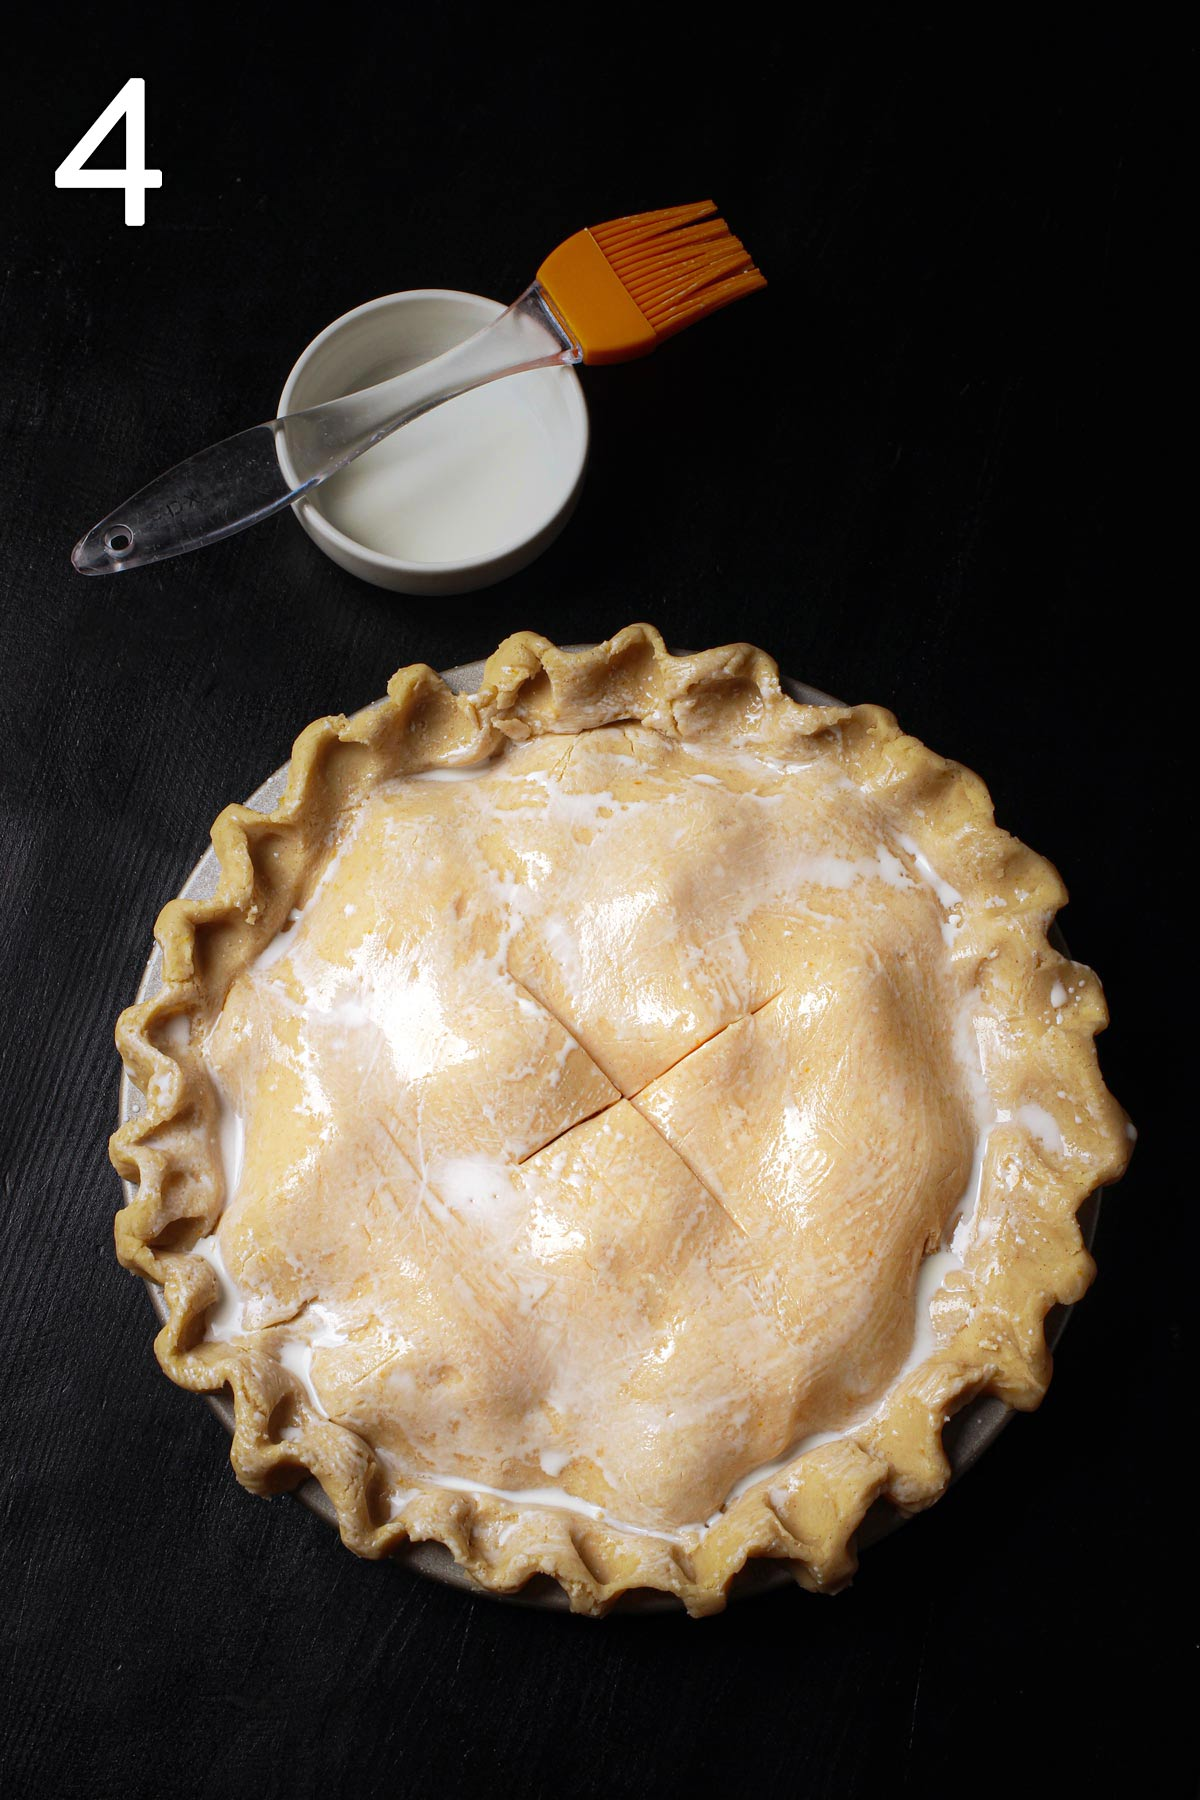 pie brushed with cream next to dish and pastry brush.